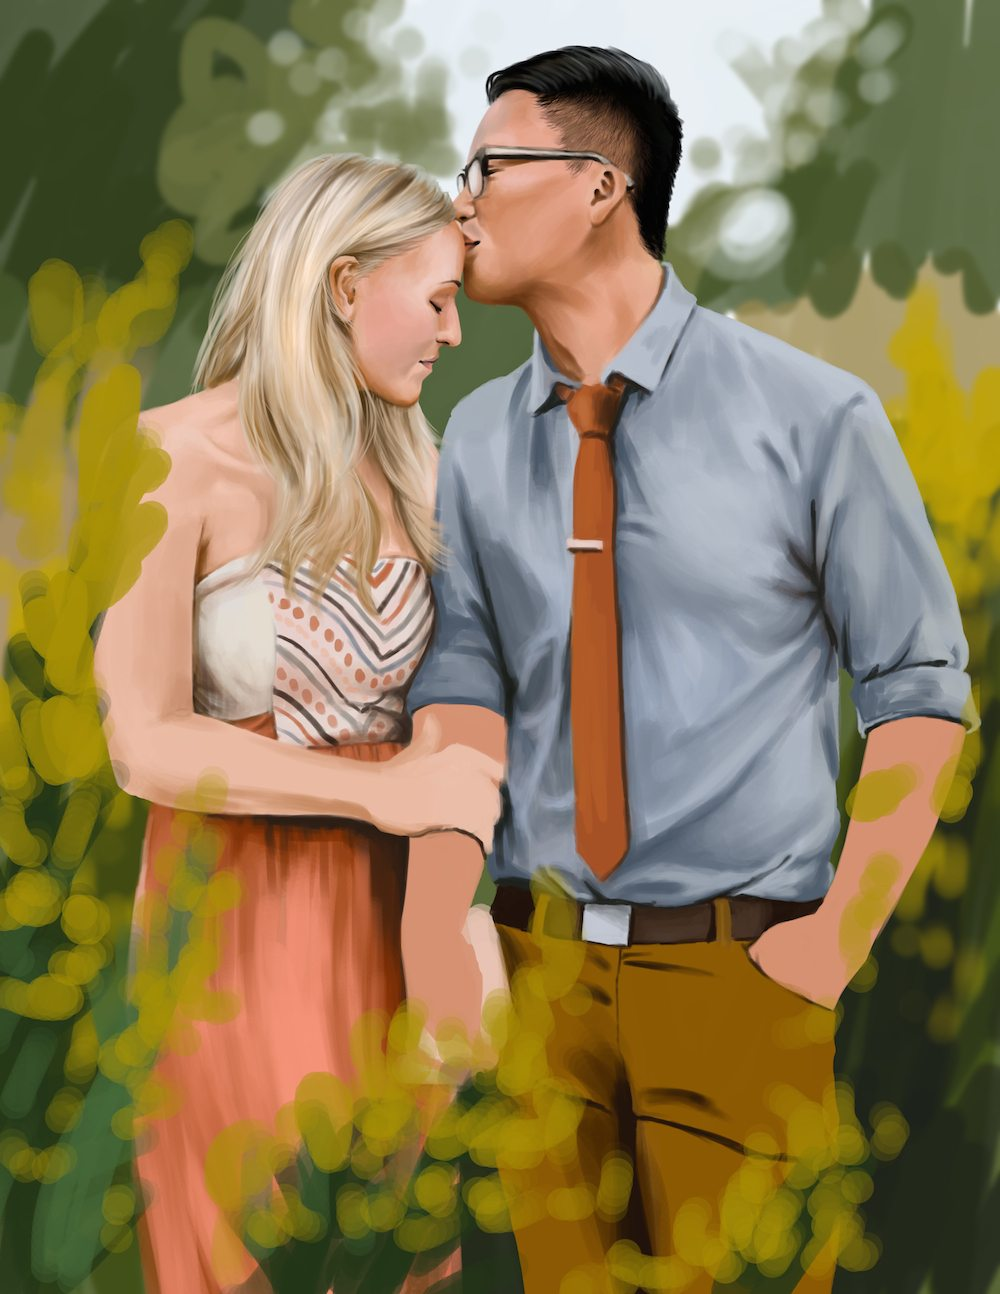 WIP Portrait of a Couple by Shobey1kanoby